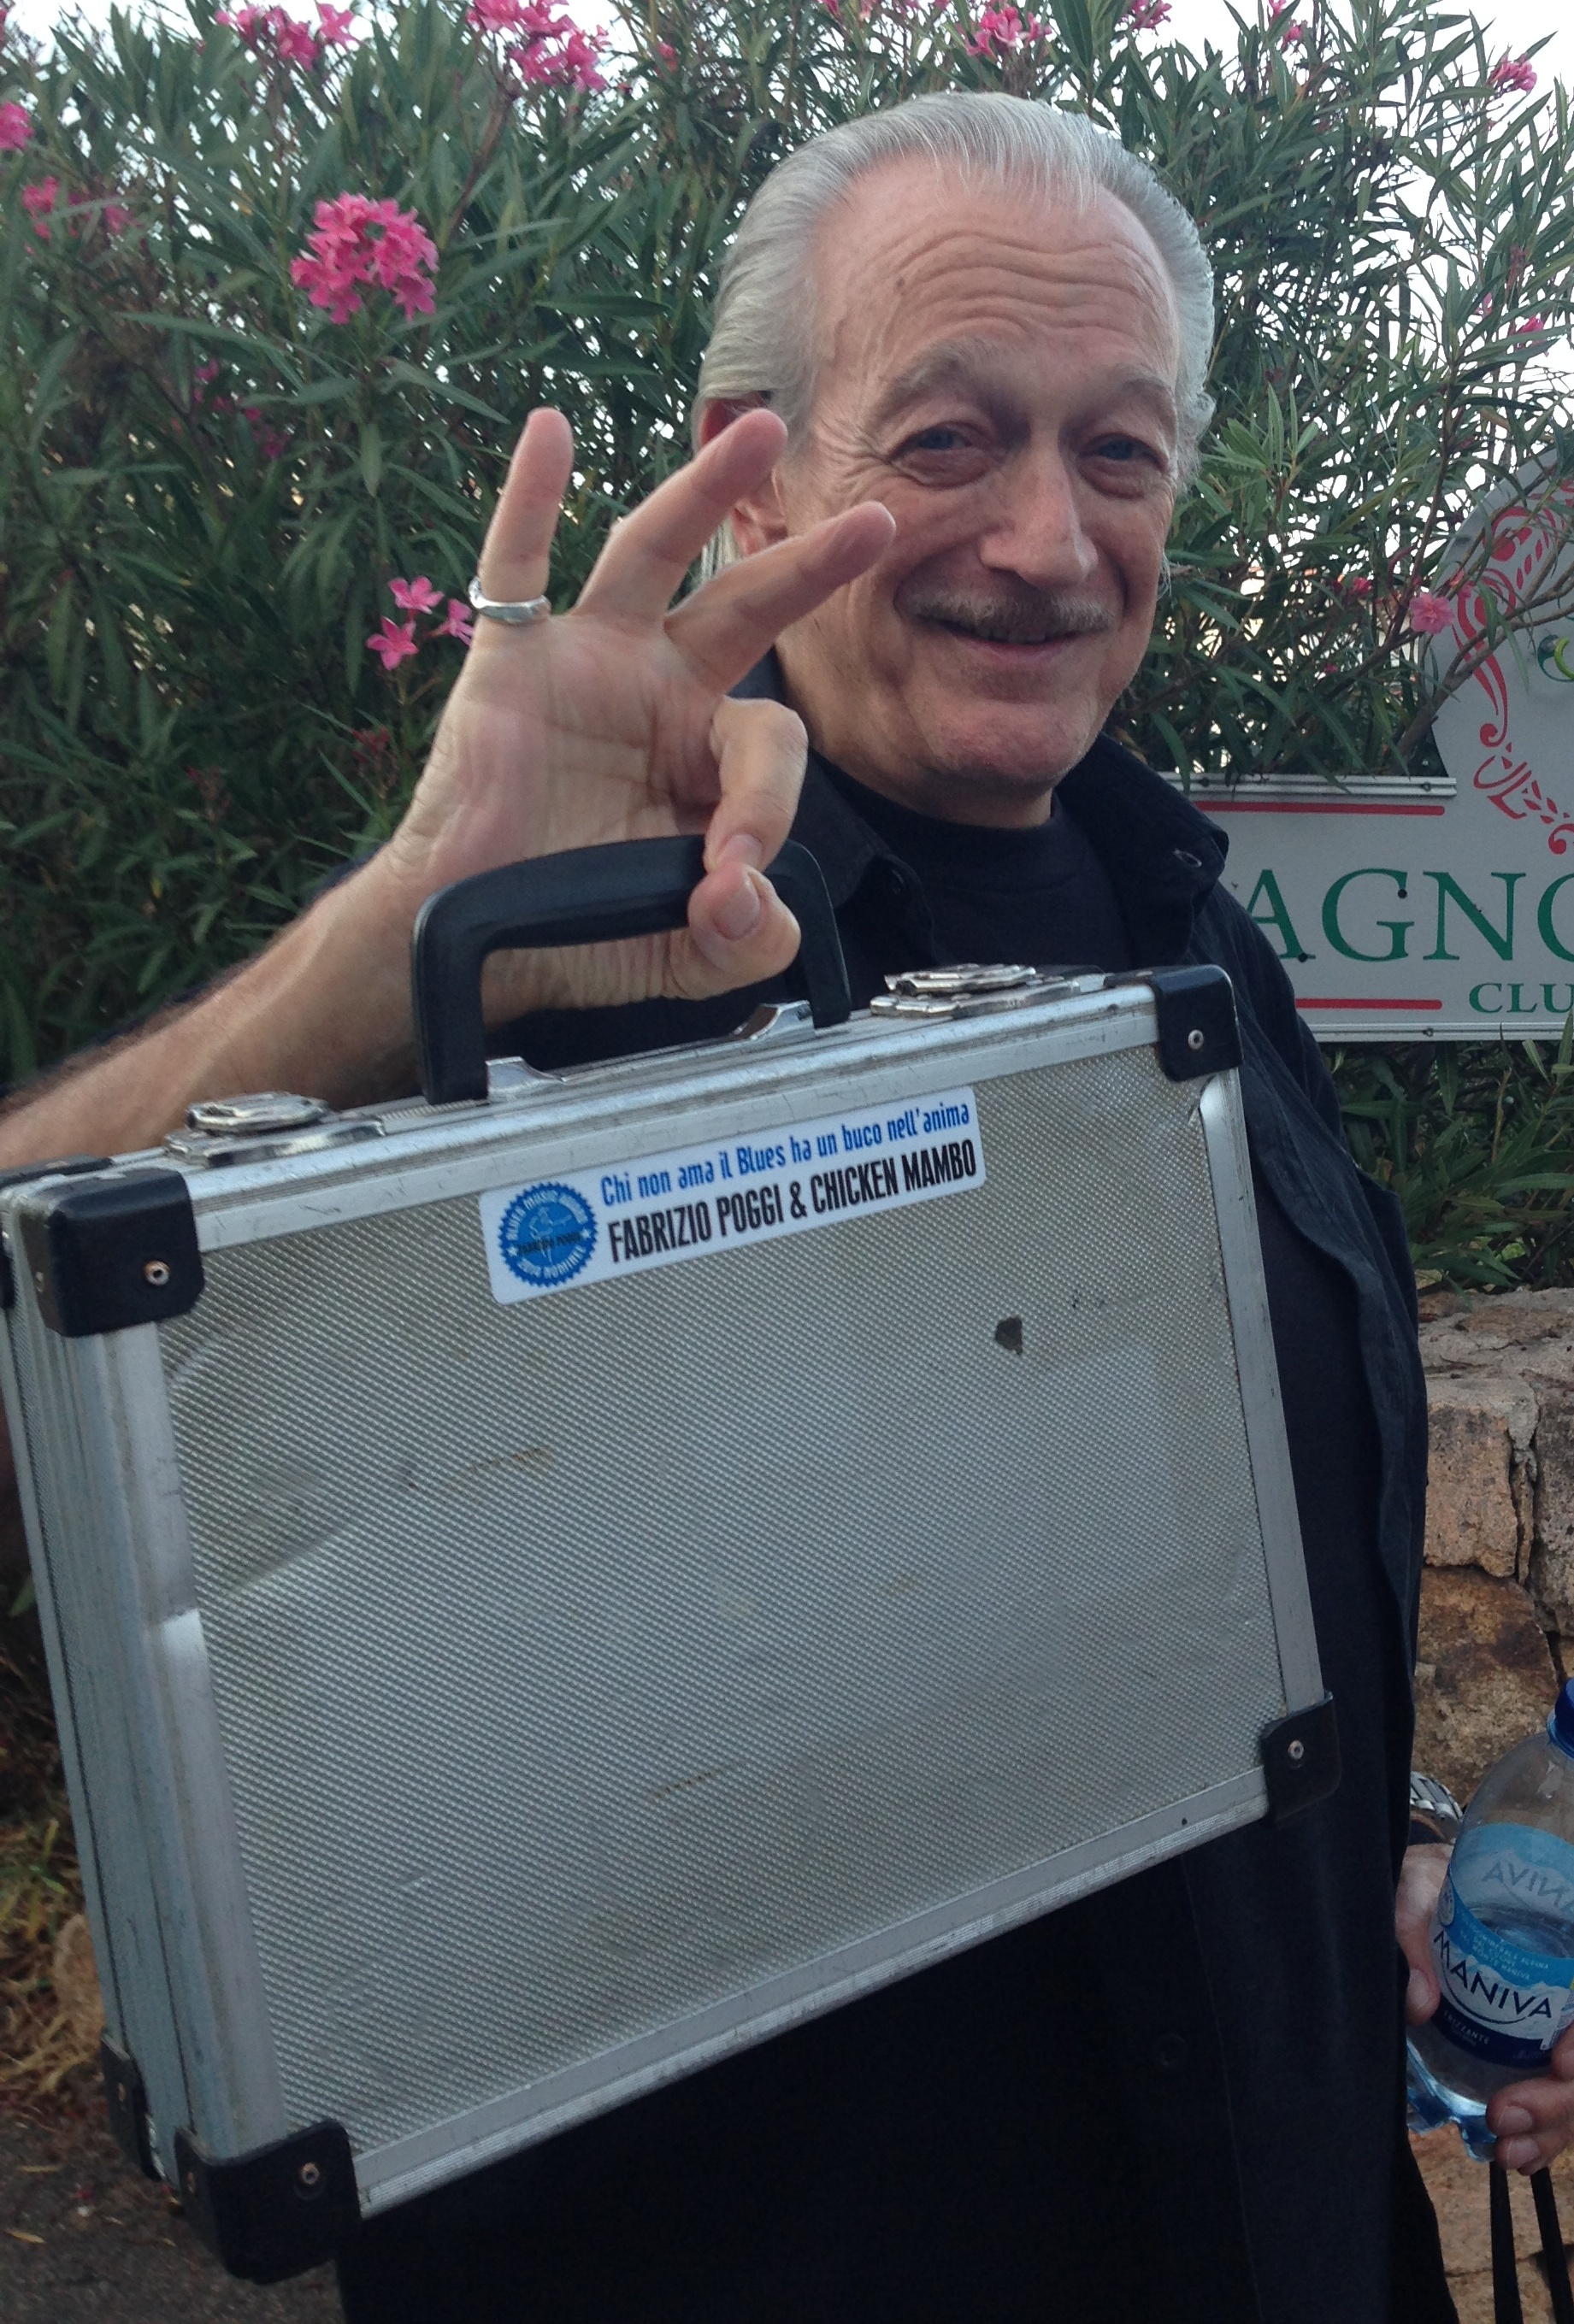 Charlie Musselwhite with the sticker